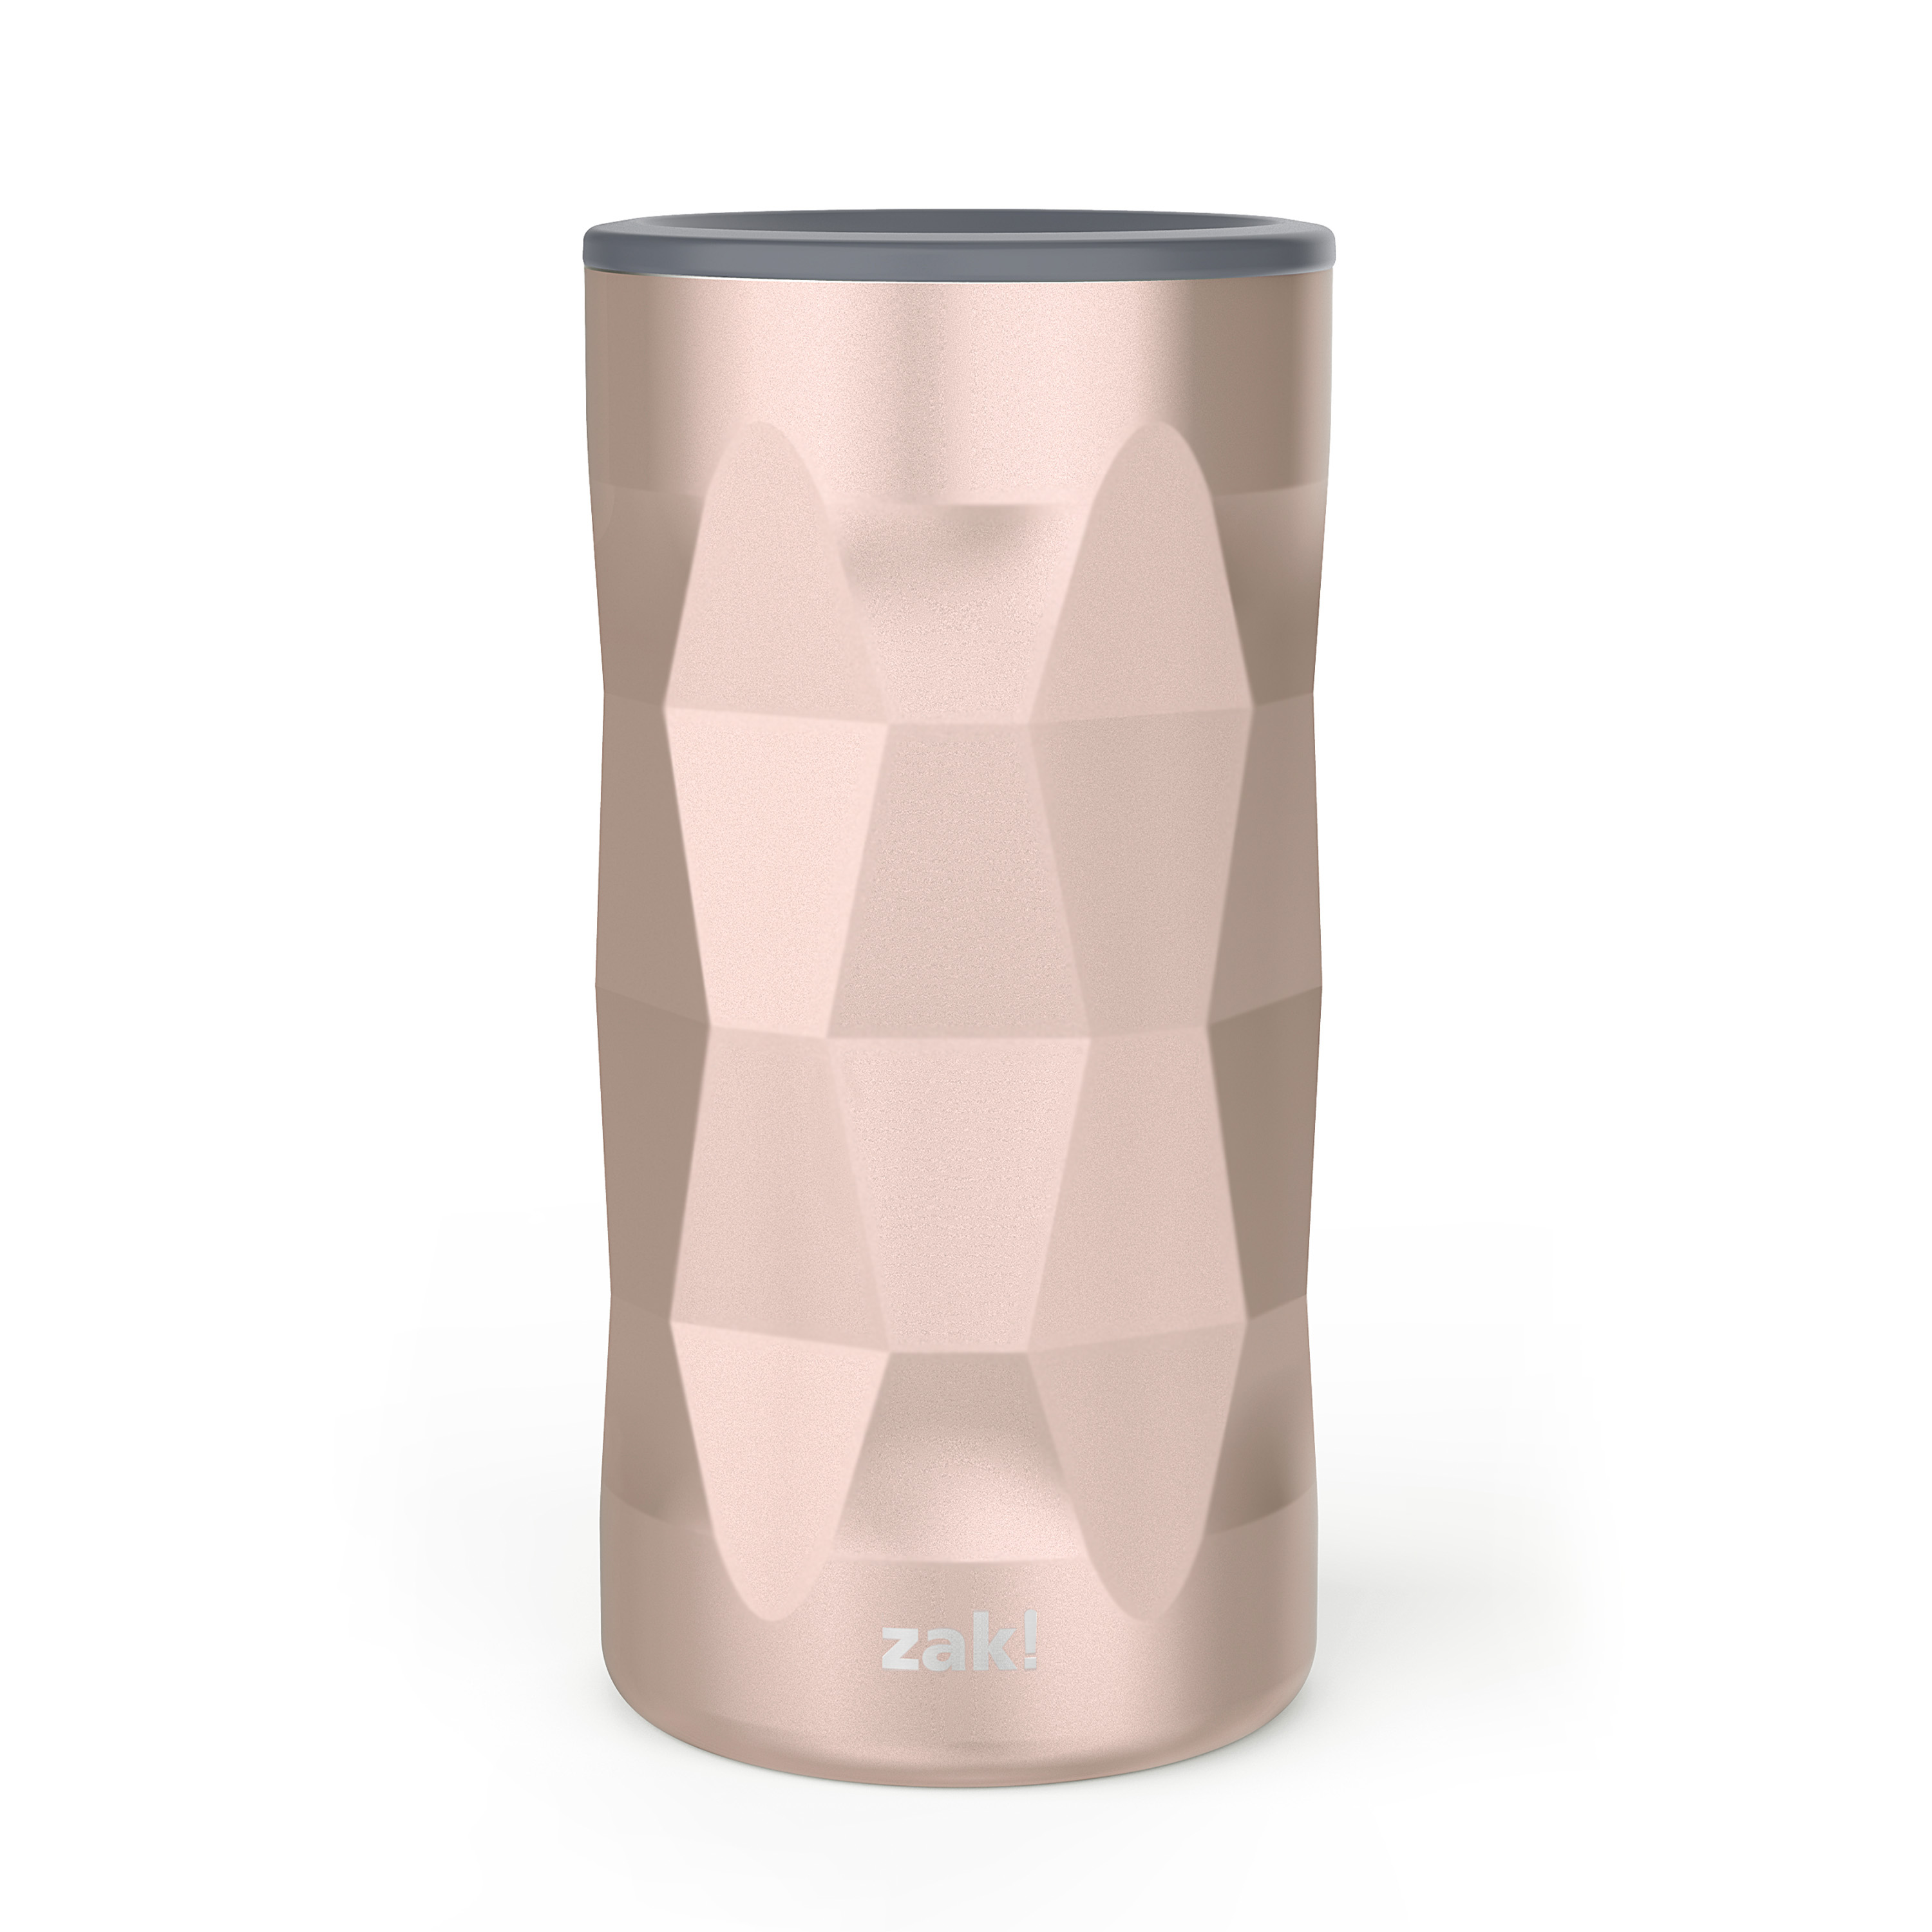 Fractal 12 ounce Vacuum Insulated Stainless Steel Tumbler, Rose Gold slideshow image 1